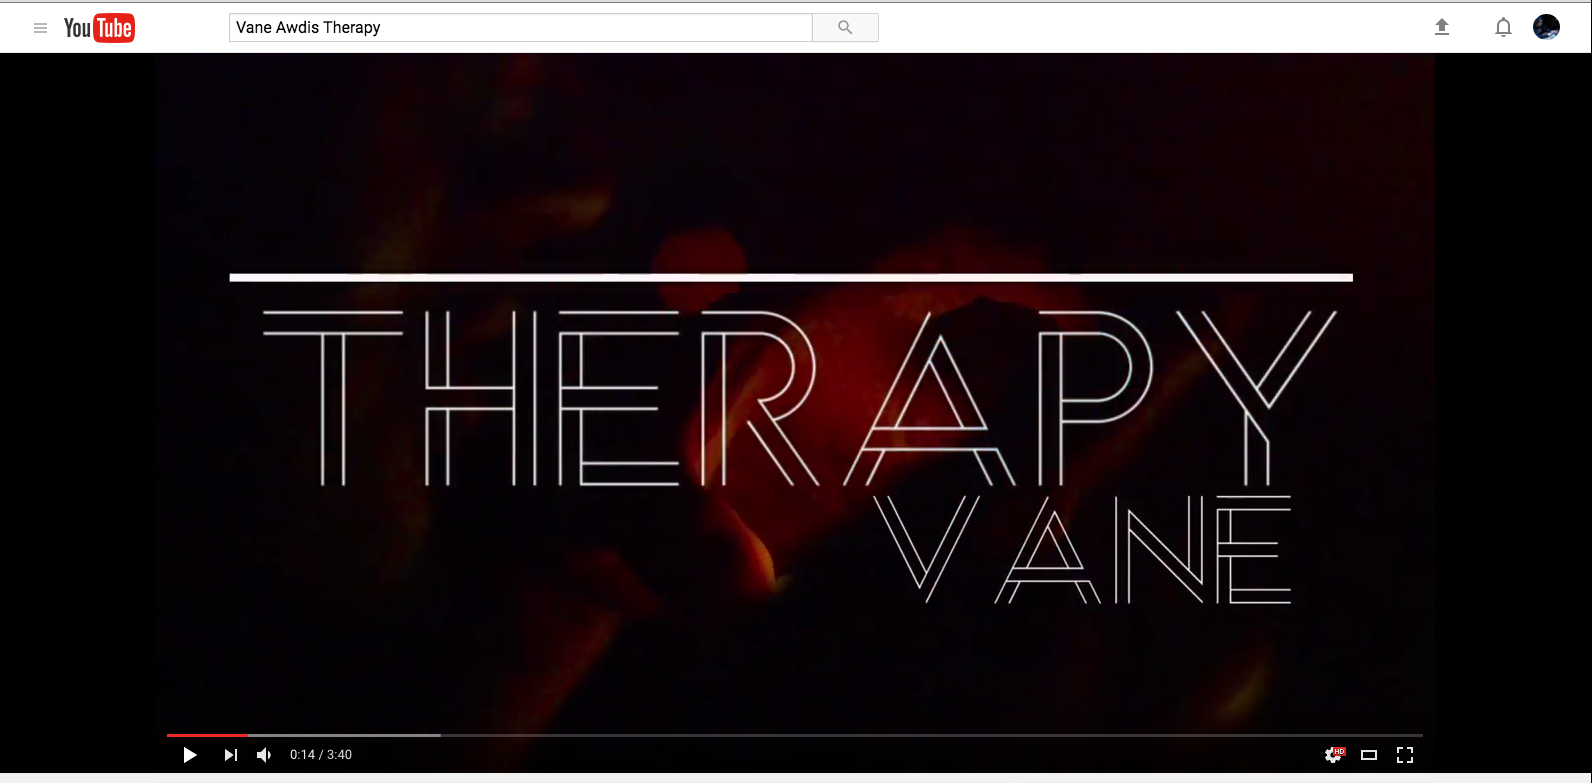 Therapy Music Video